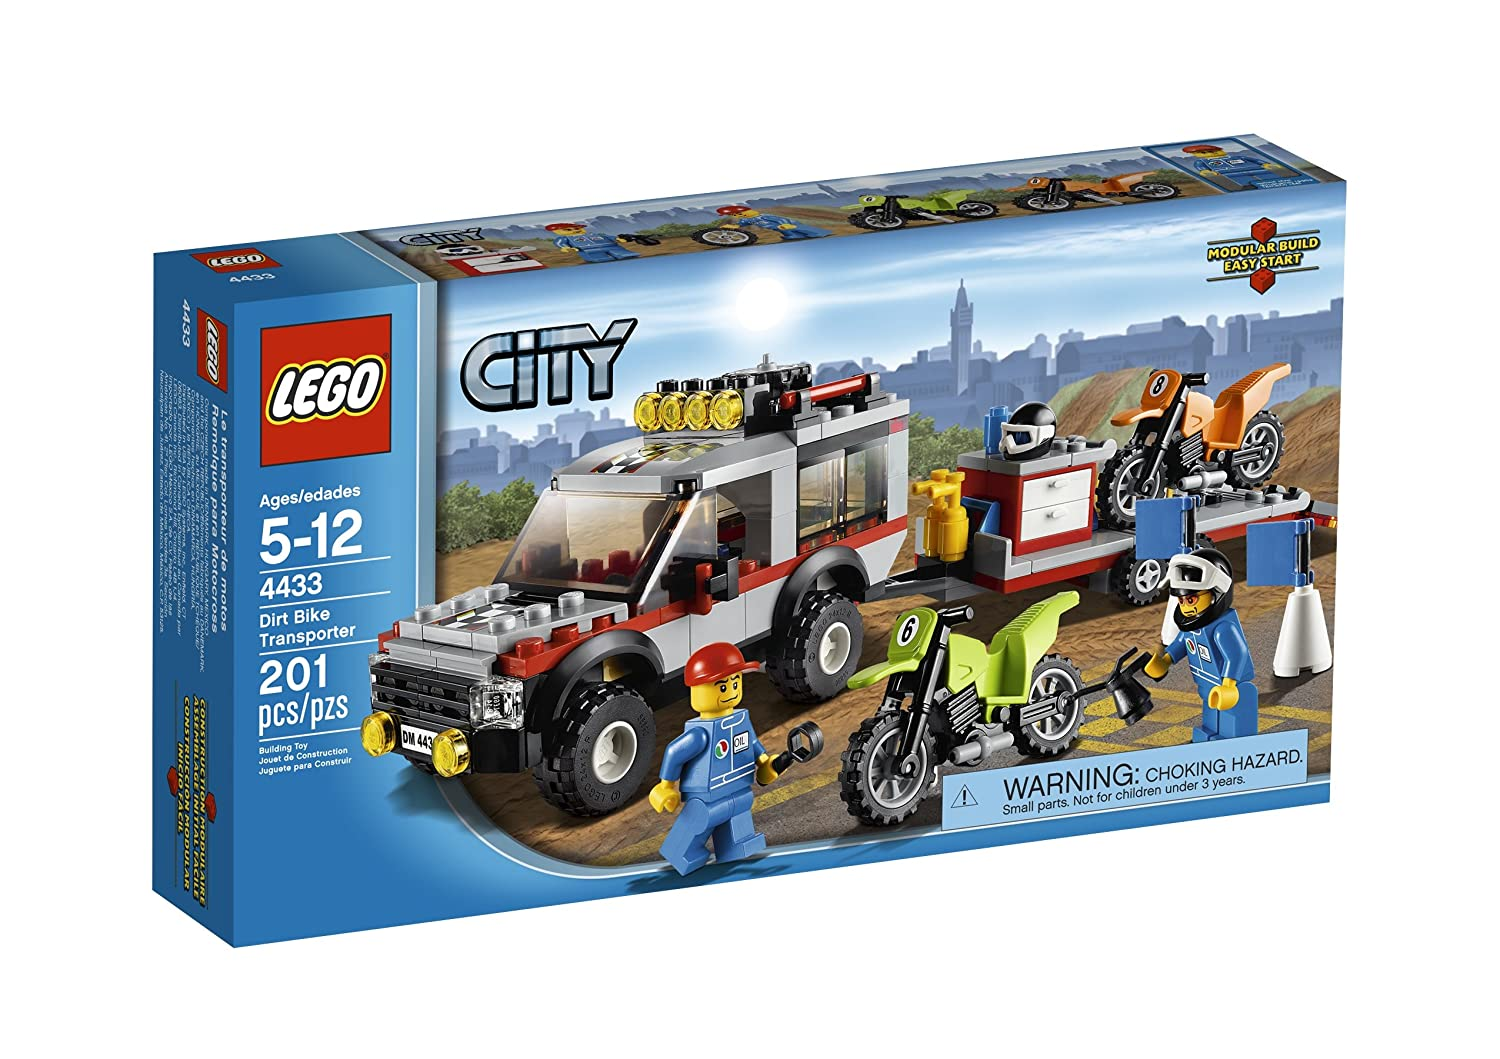 LEGO City Town Dirt Bike Transporter 4433 by LEGO 6034245